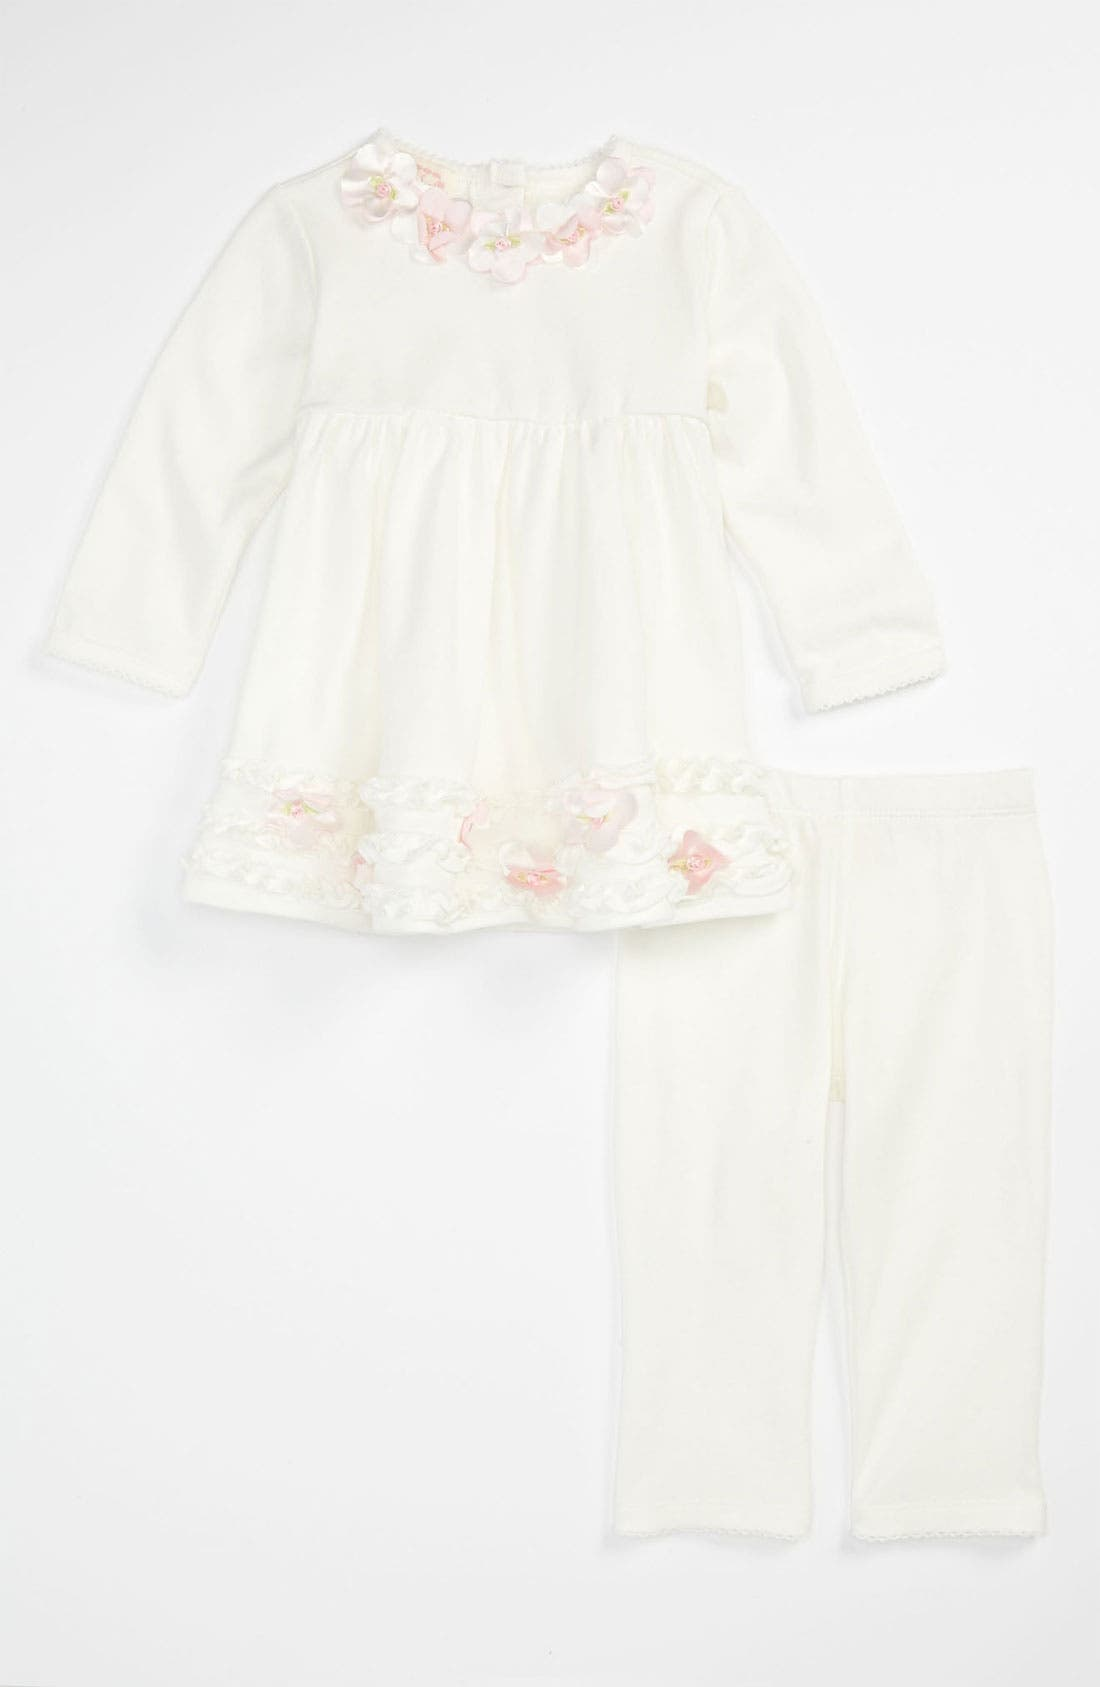 Alternate Image 1 Selected - Biscotti Dress & Leggings (Infant)